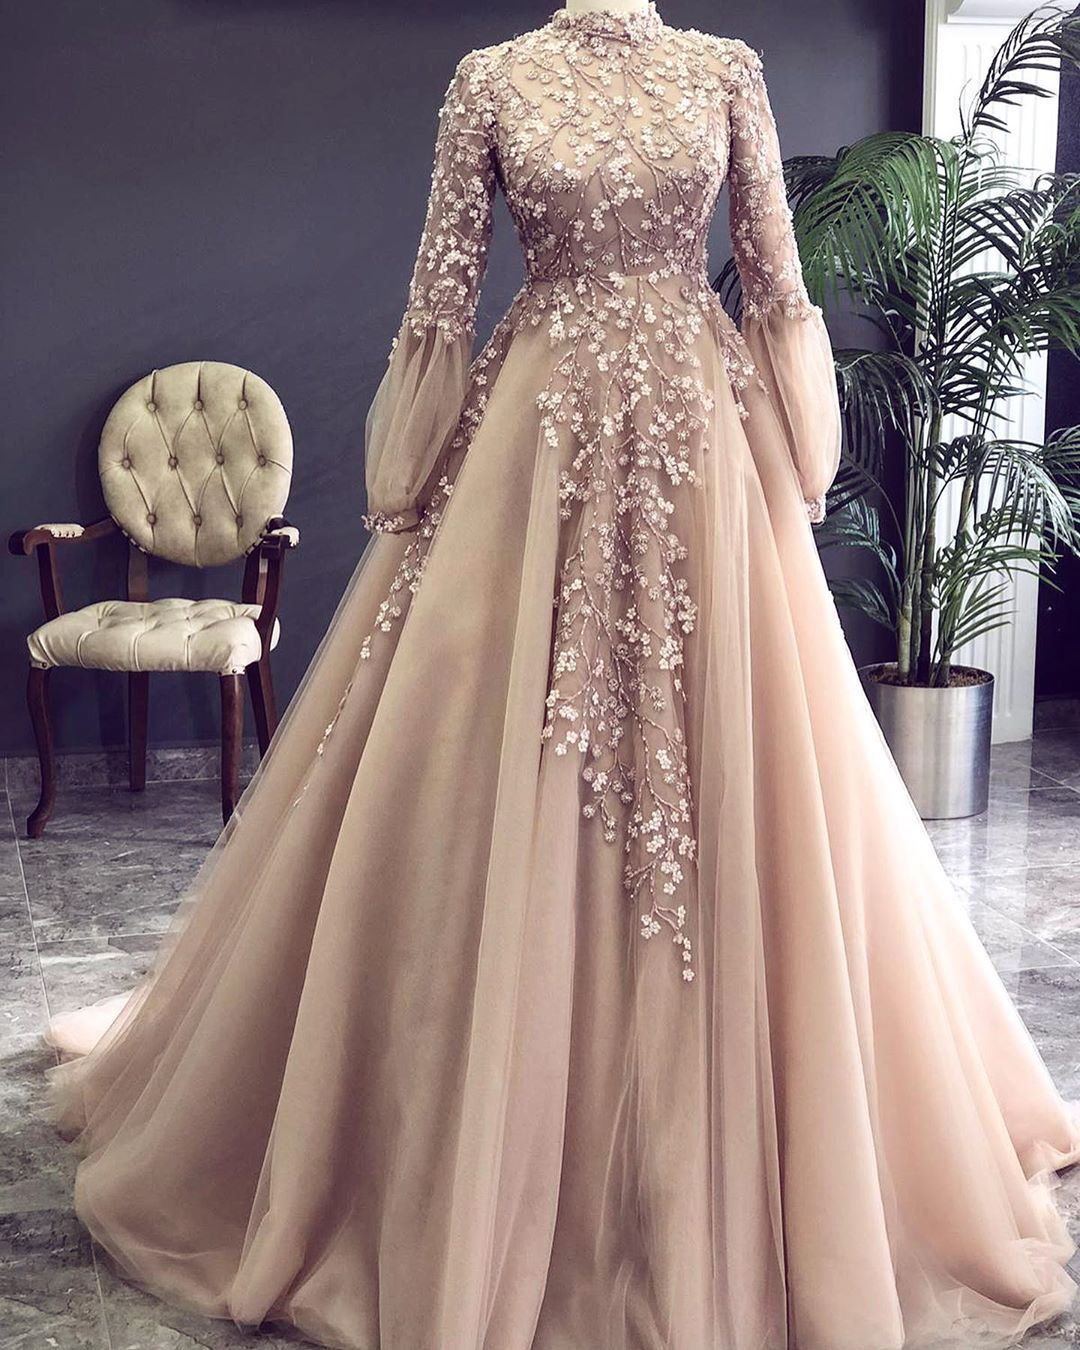 Lace Embroidery Wedding Dress Ball Gown Maxi Evening Party Formal Bridemaid Chic